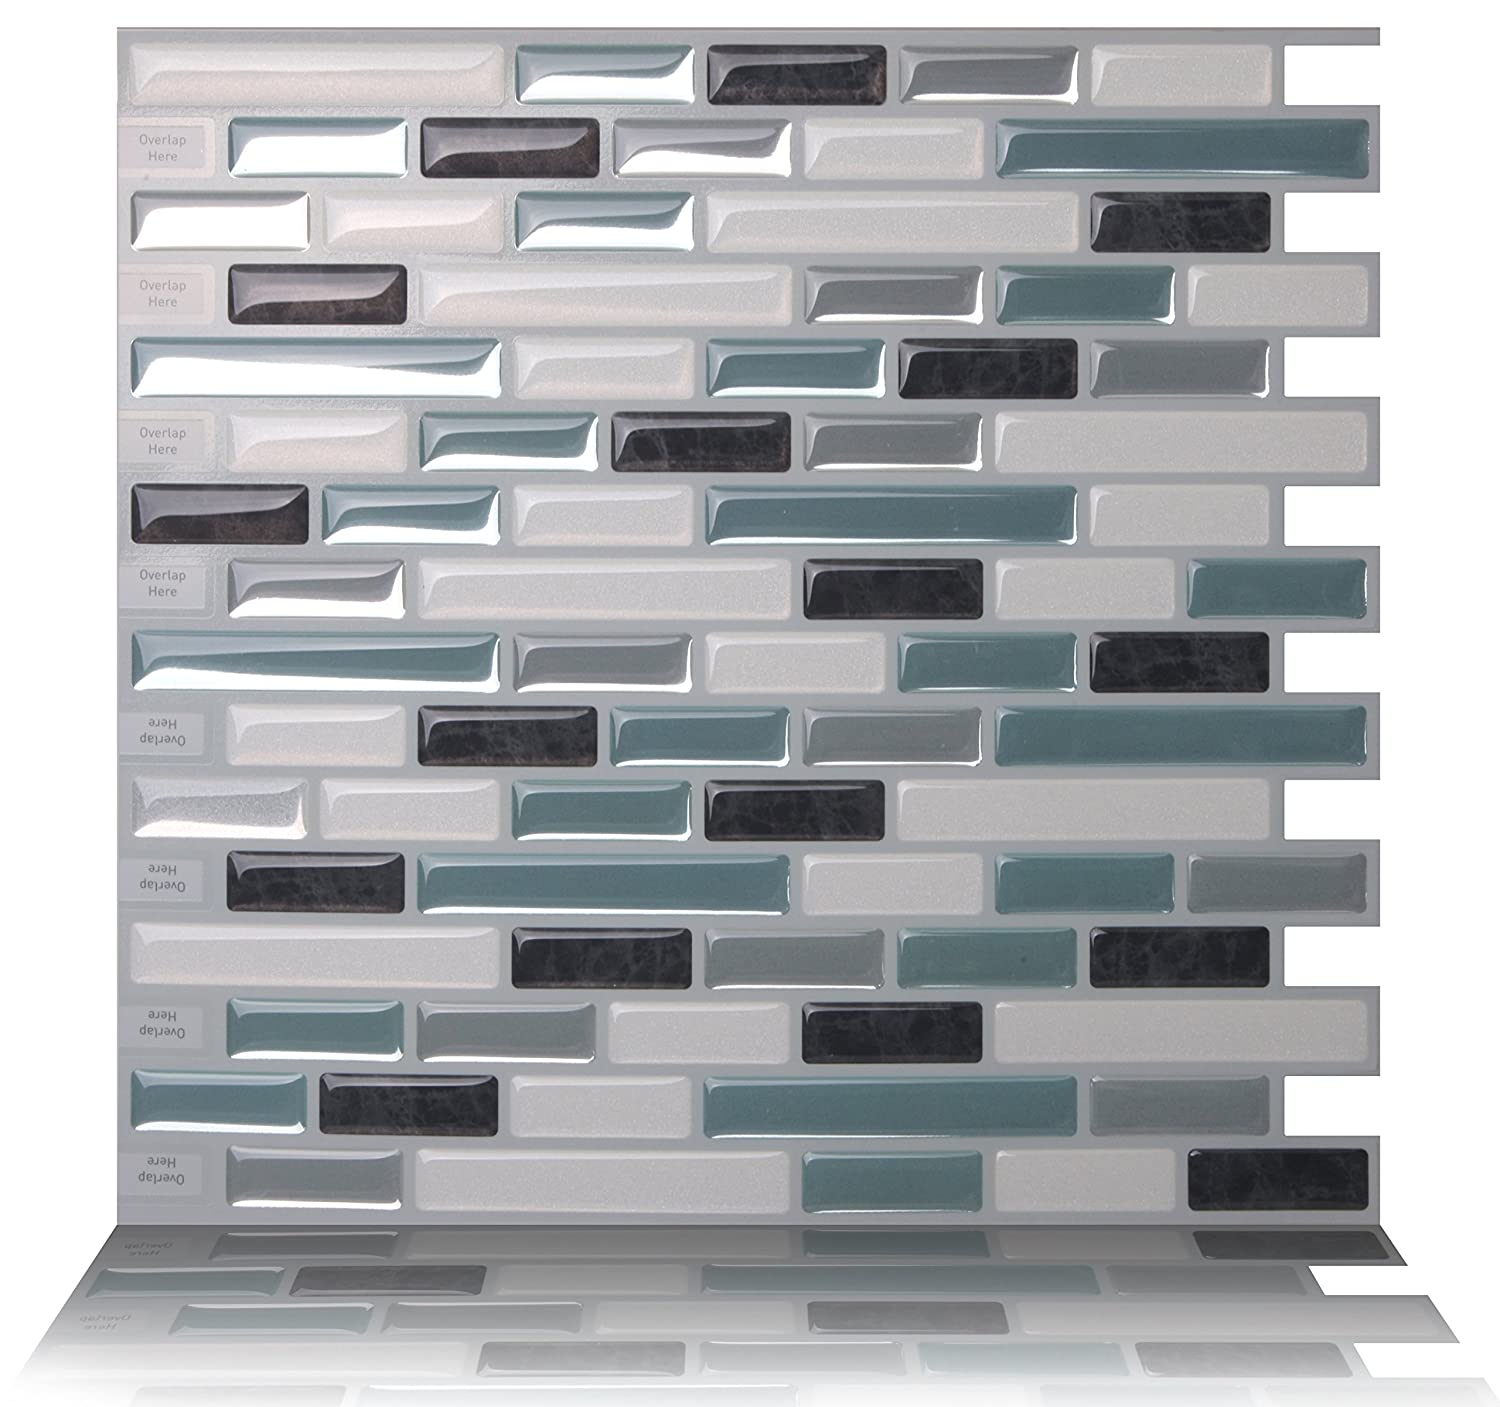 Amazon.com: Tic Tac Tiles Anti-mold Peel and Stick Wall Tile in Como ...